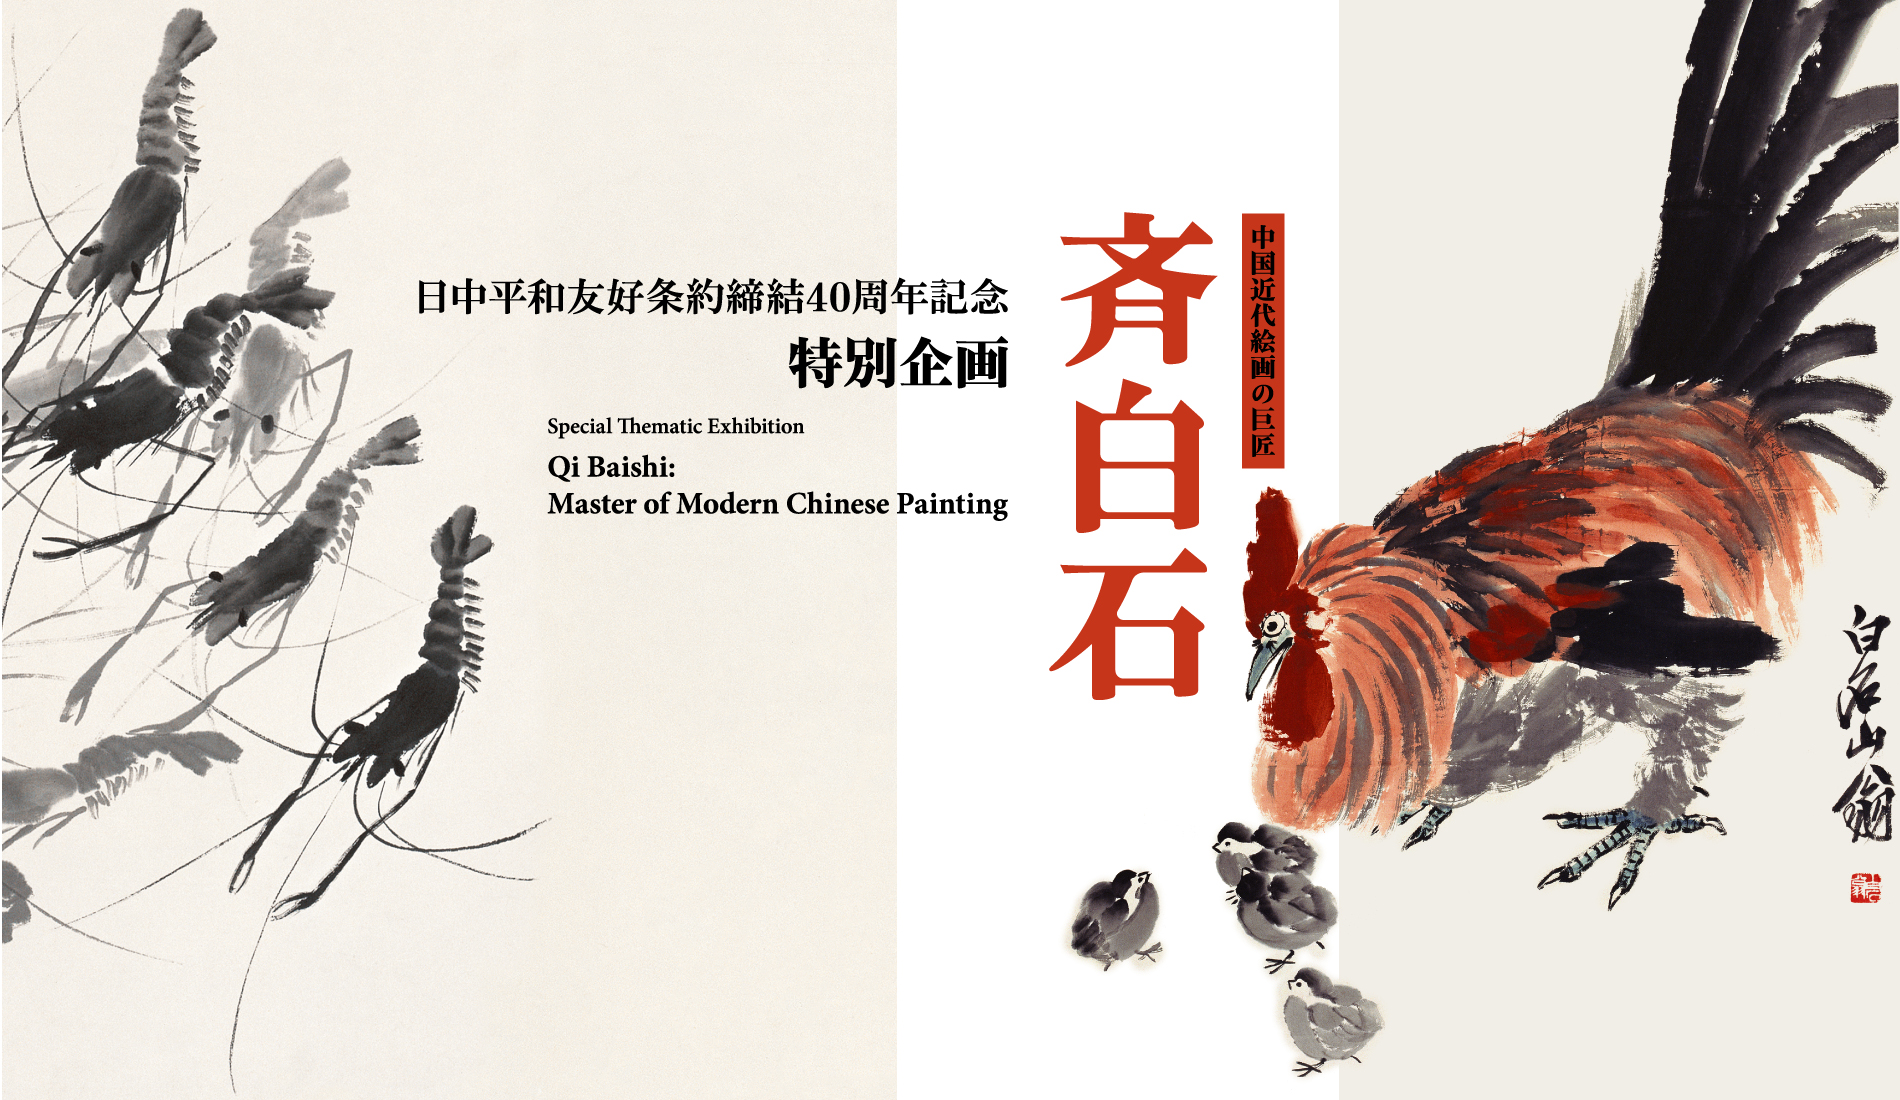 Qi Baishi: Master of Modern Chinese Painting